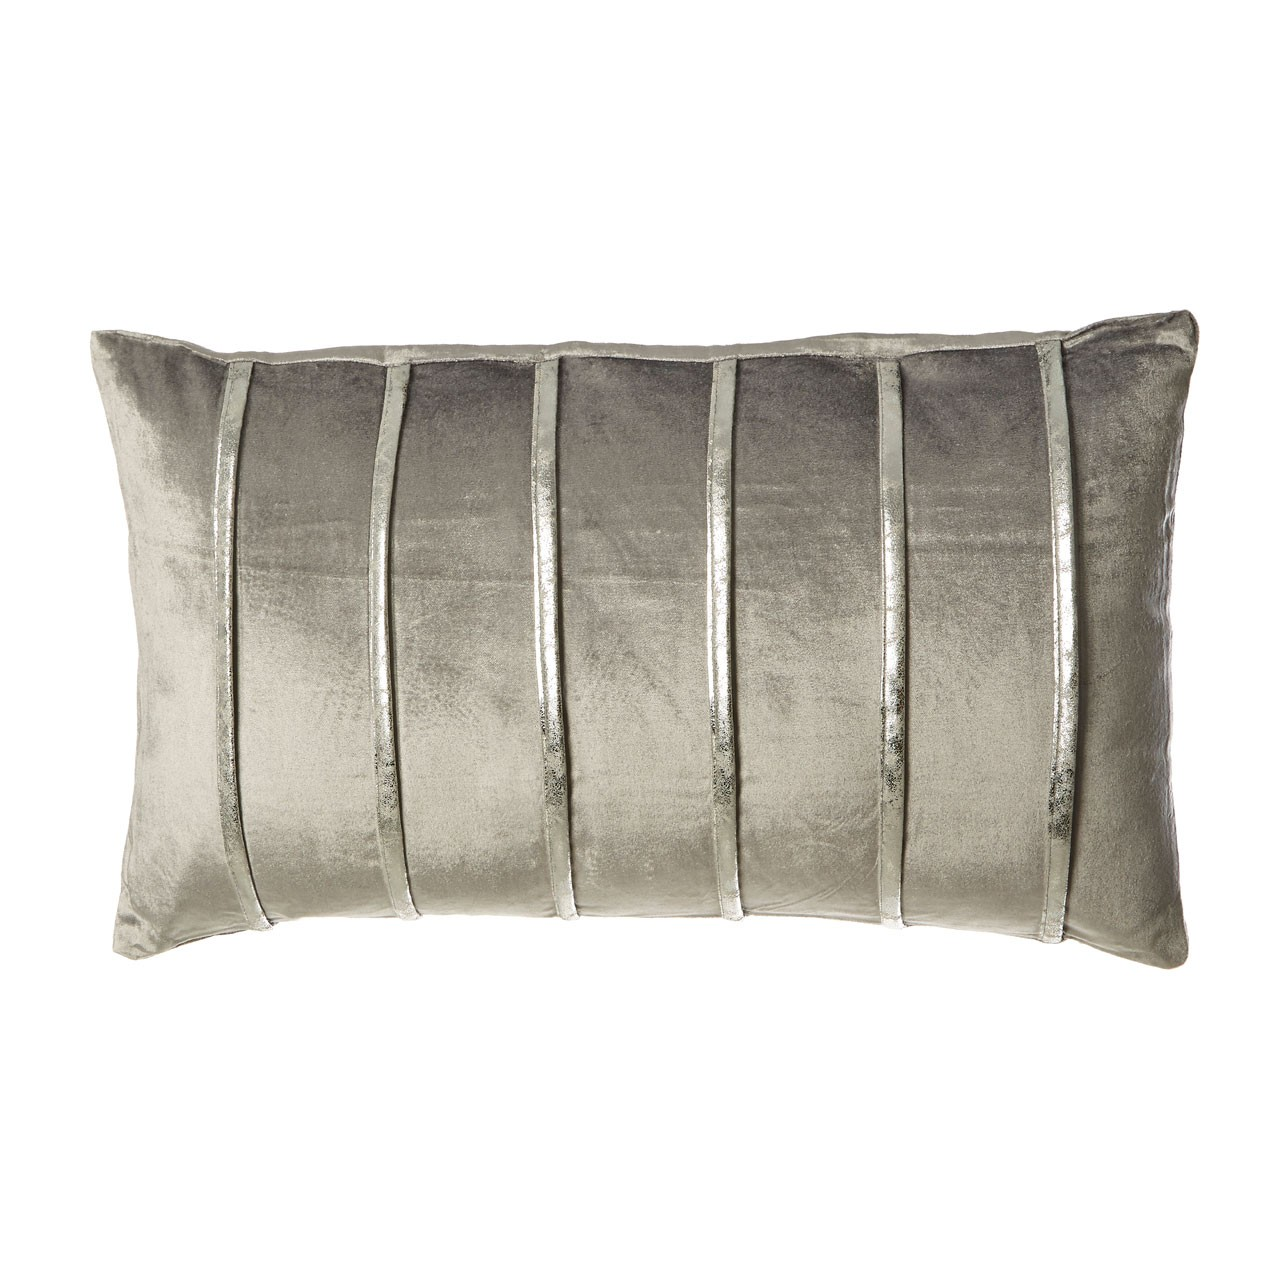 Prime Furnishing Kensington Townhouse Cushion - Grey